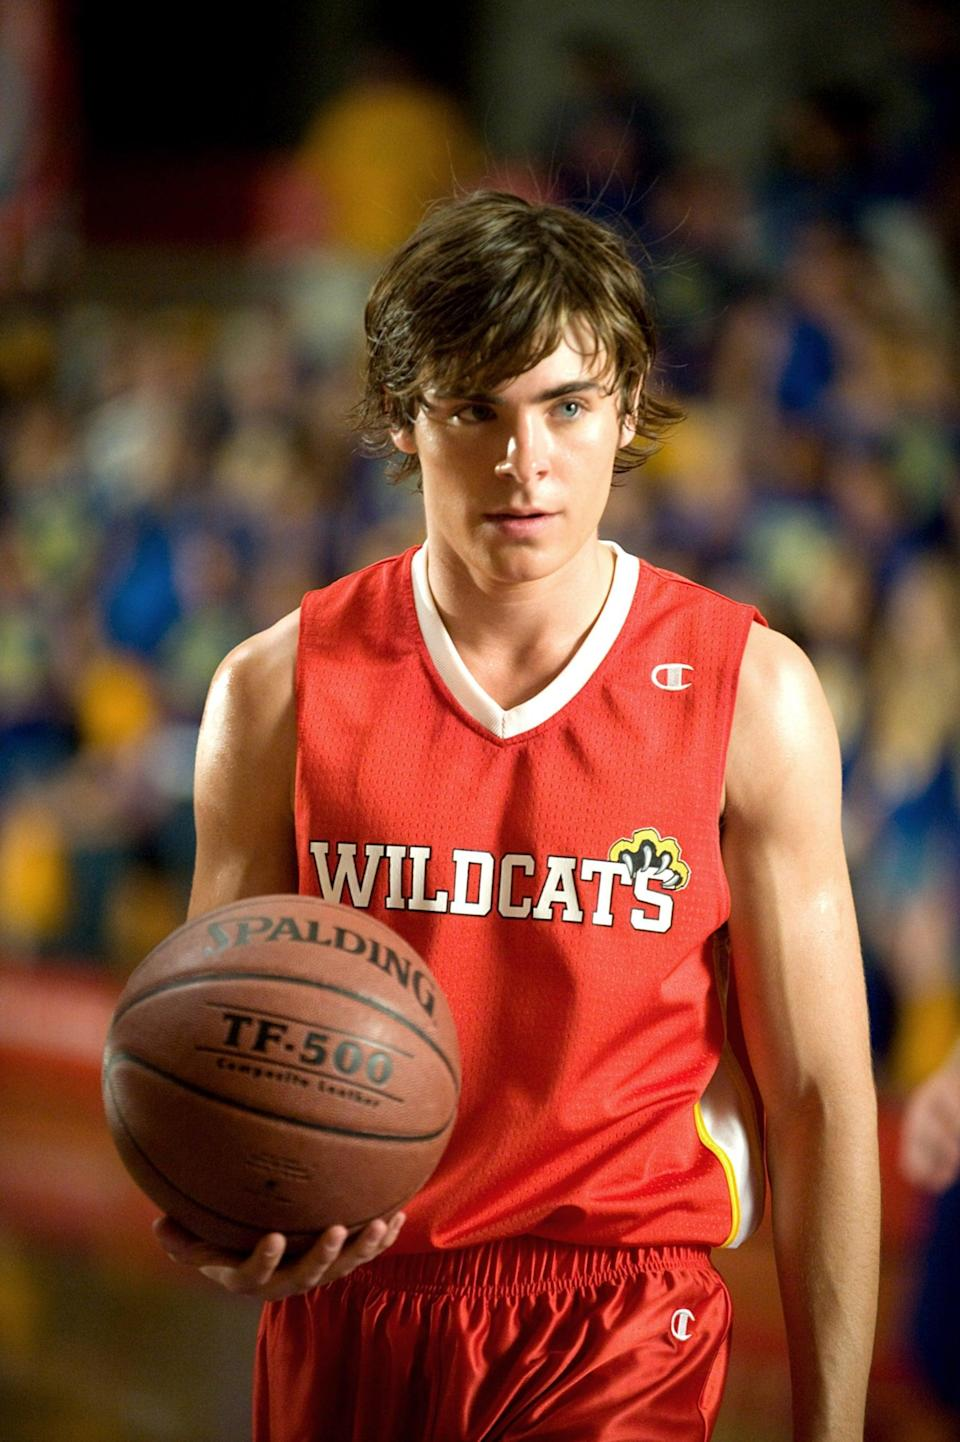 <ul> <li><strong>What to wear:</strong> Show off your school spirit by donning a red basketball uniform. </li> <li><strong>How to act:</strong> Try to keep your head in the game, but also be sure to hit the right notes. </li> </ul>